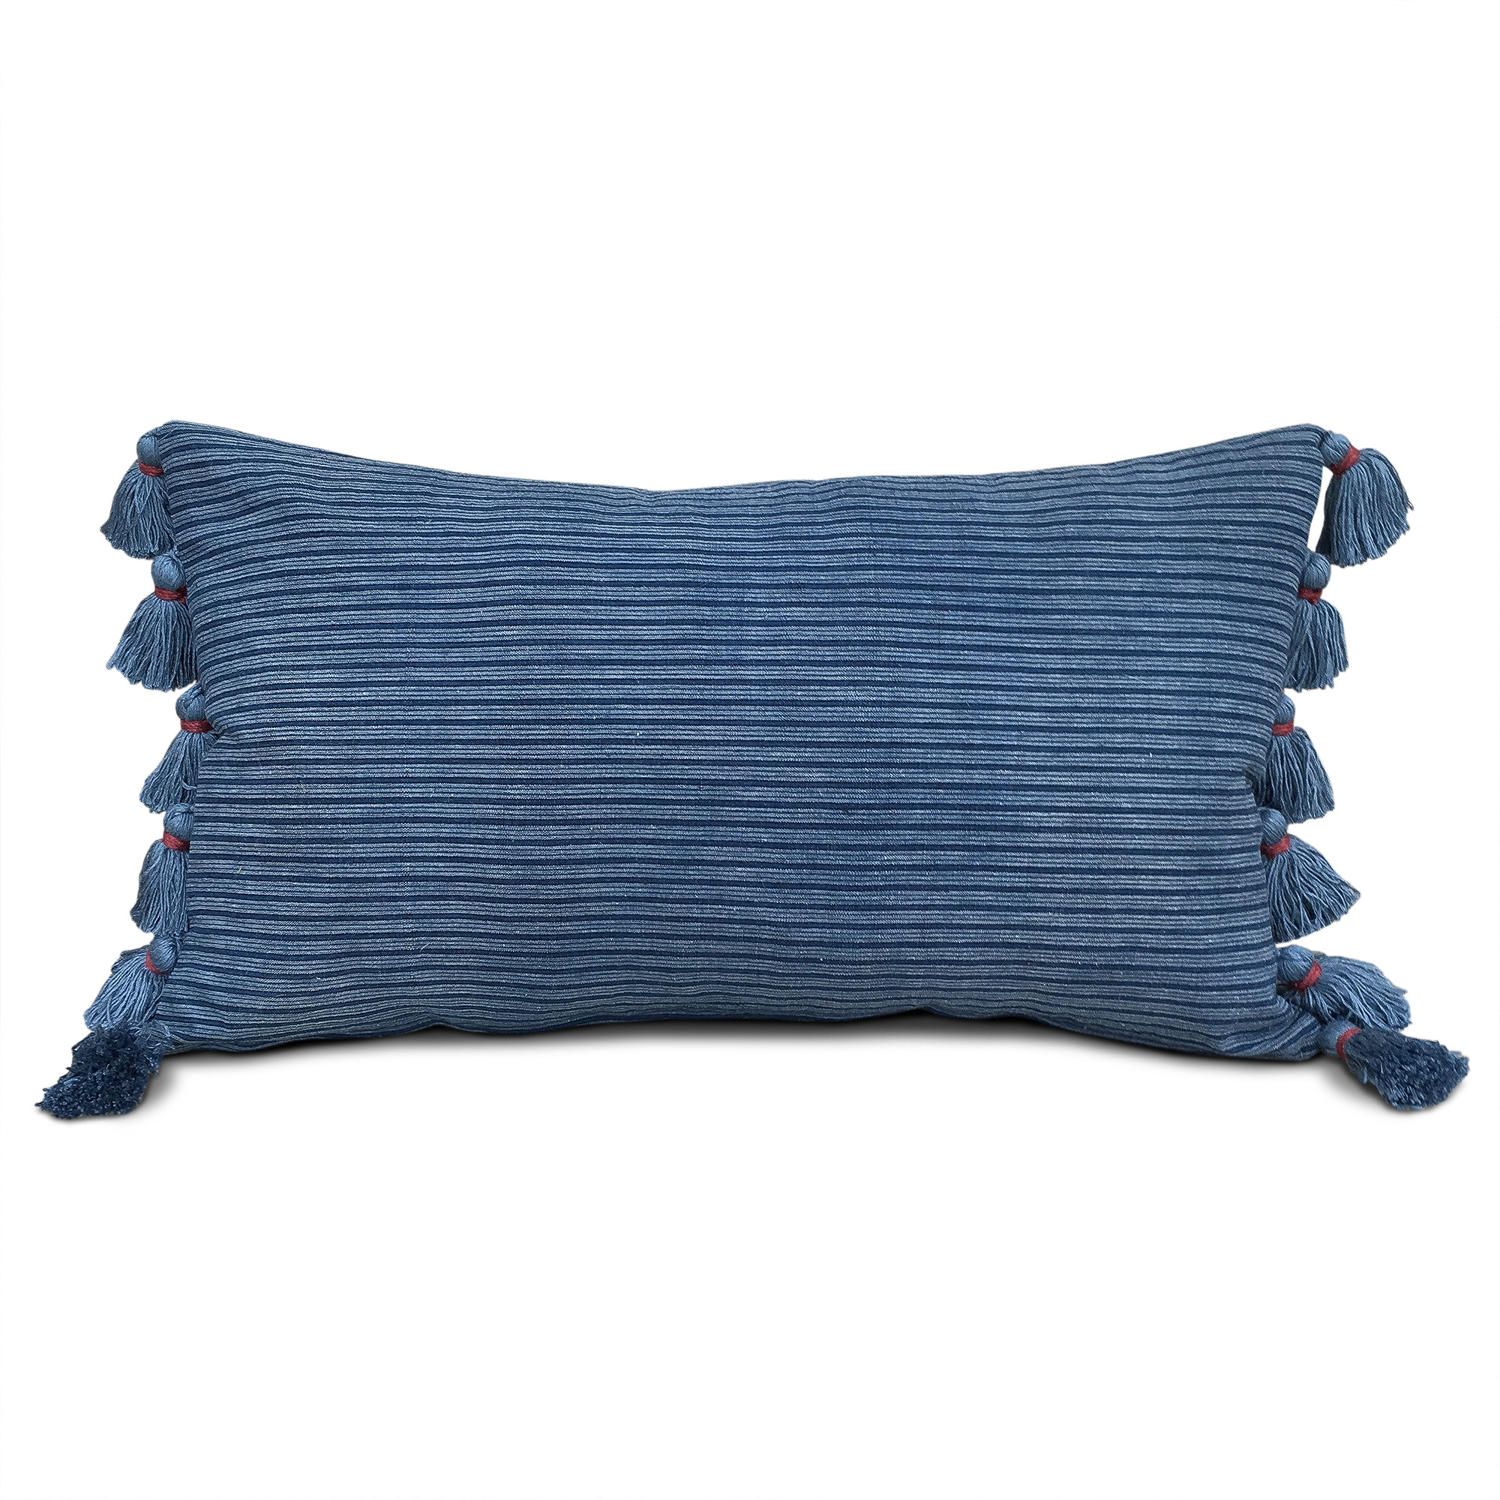 Indigo Shui Cushion with Tassels